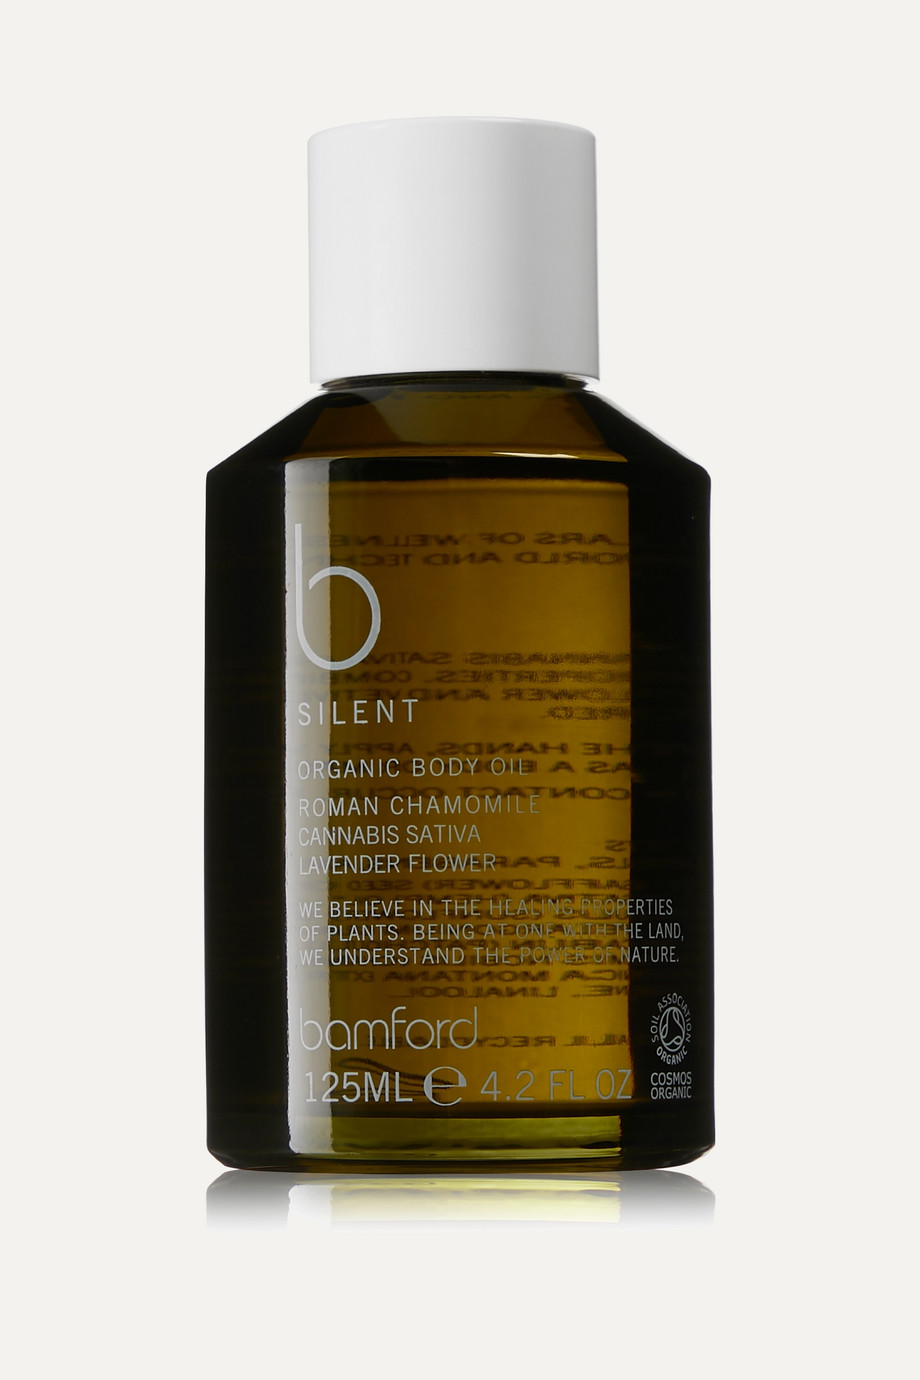 BAMFORD B Silent Organic Body Oil, 125ml